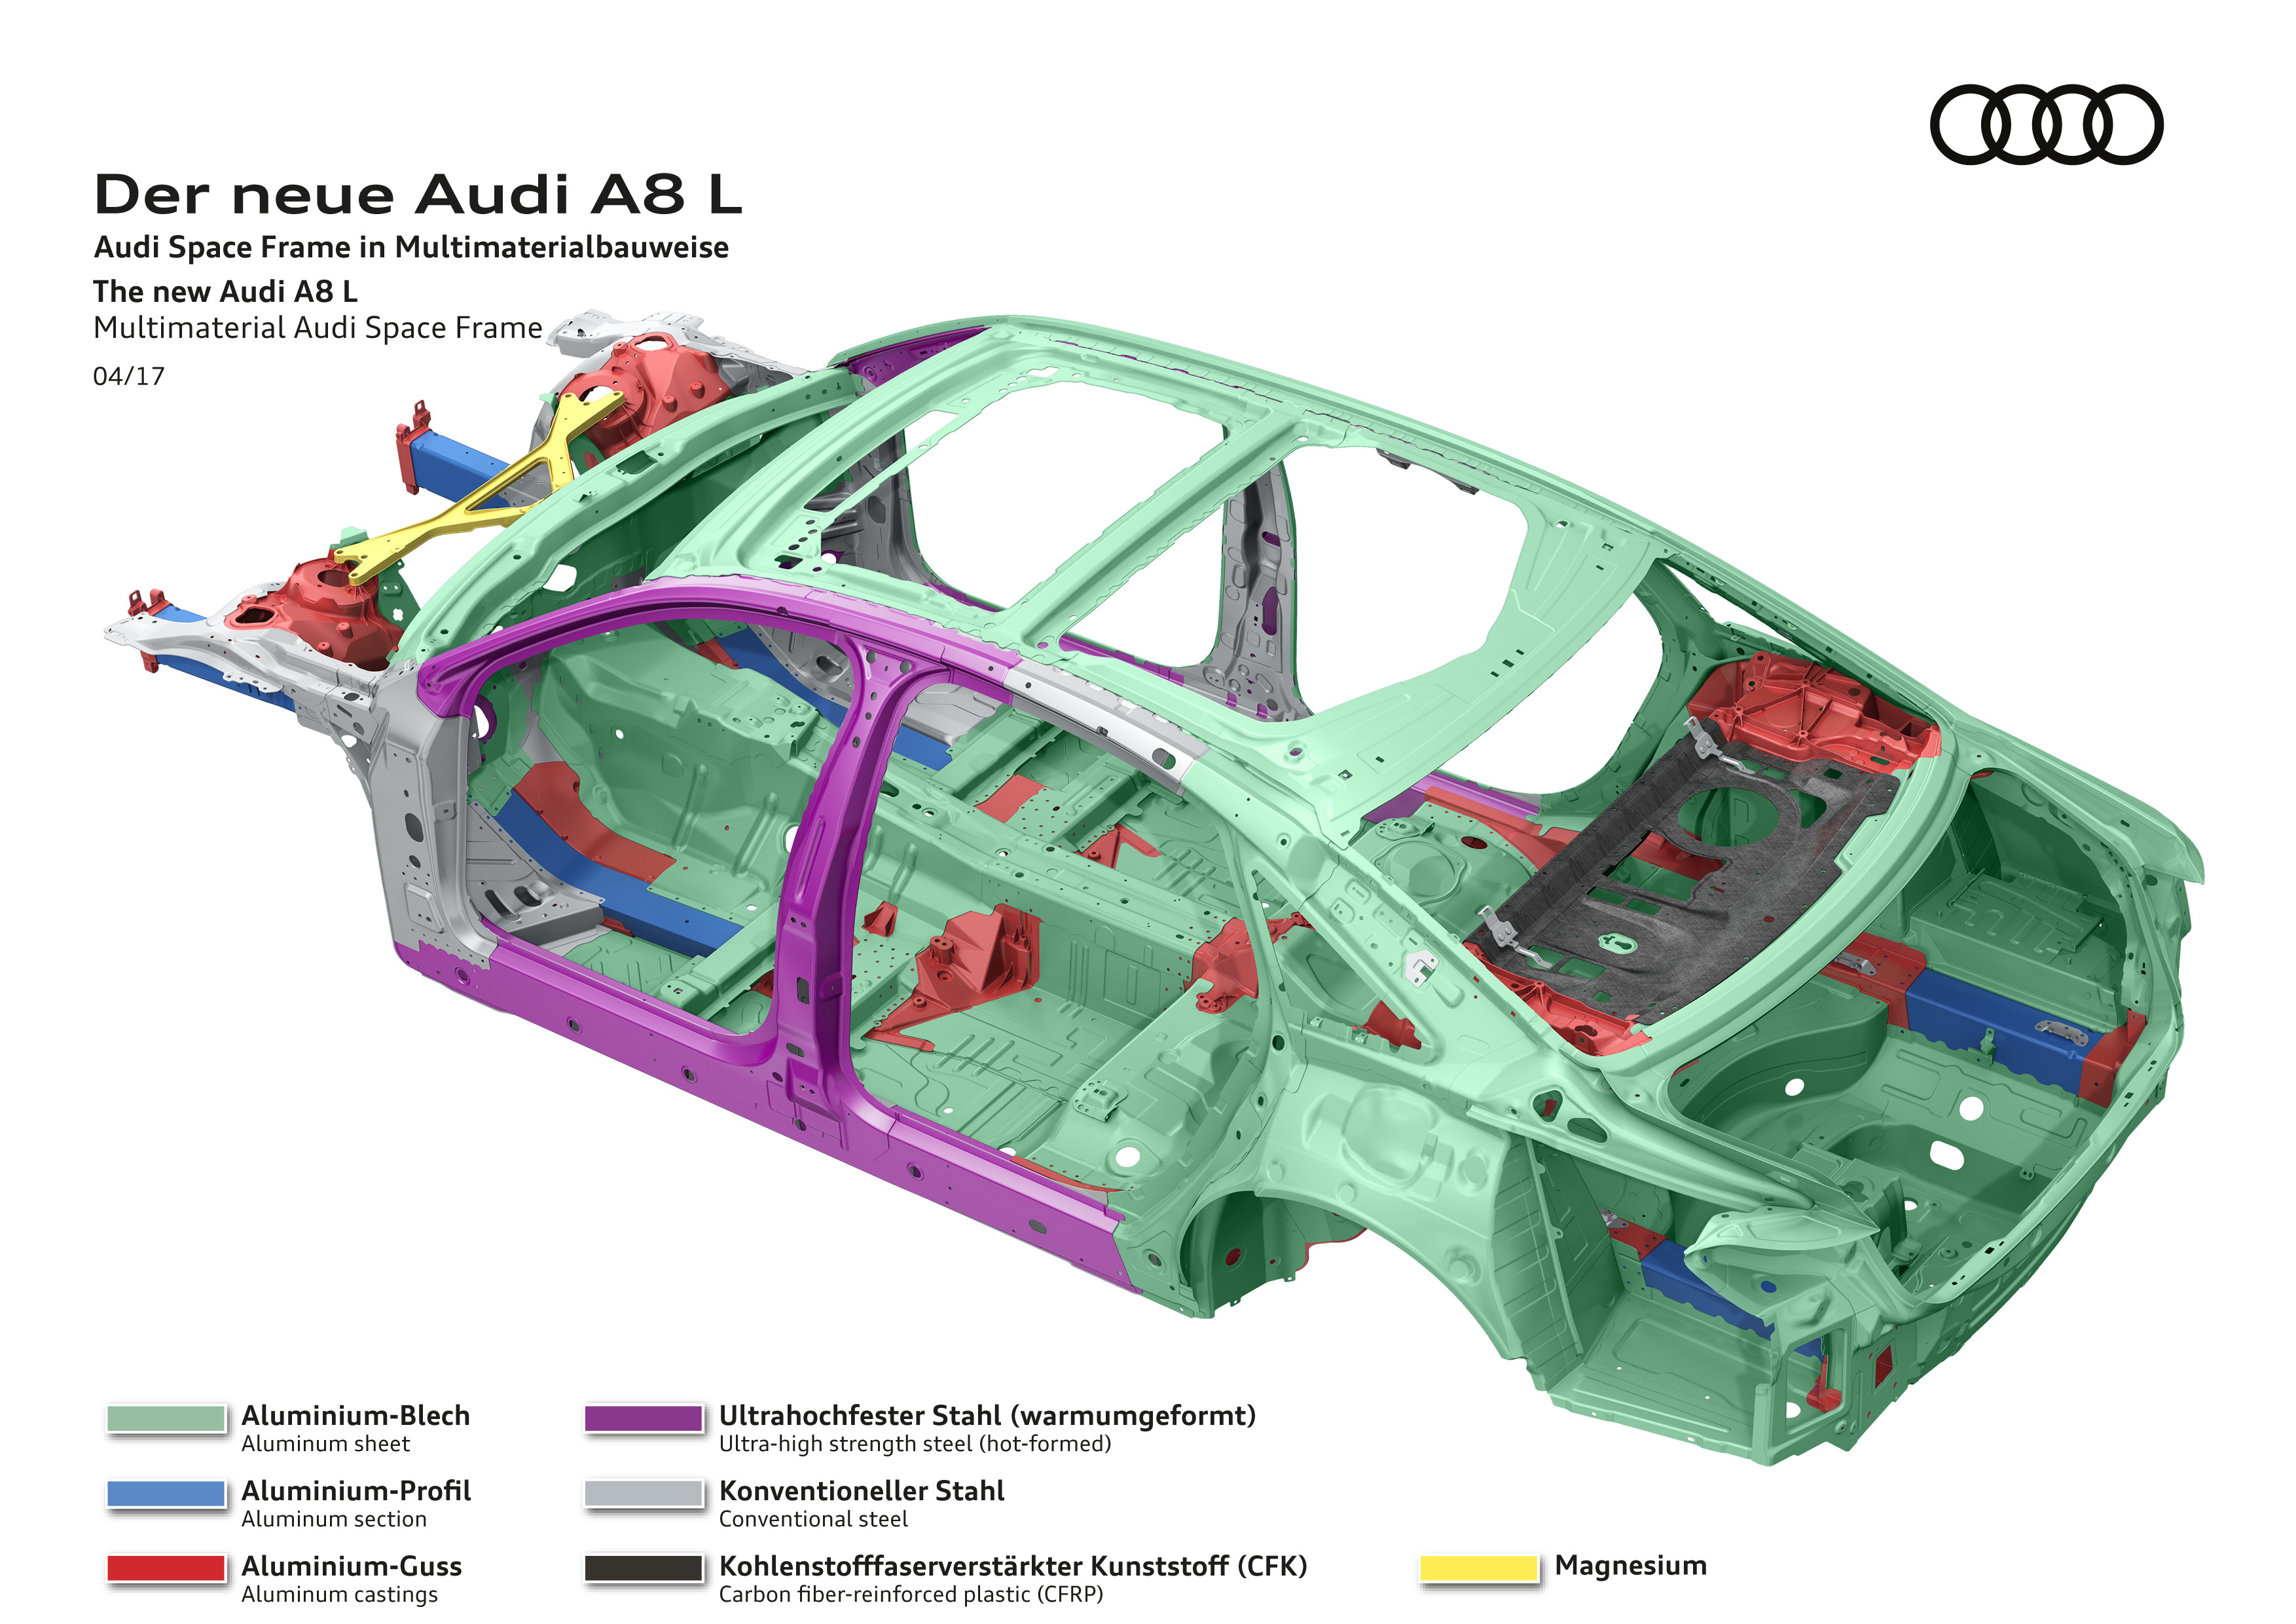 Upcoming audi a8 uses uhss aluminum carbon fiber for Space material design